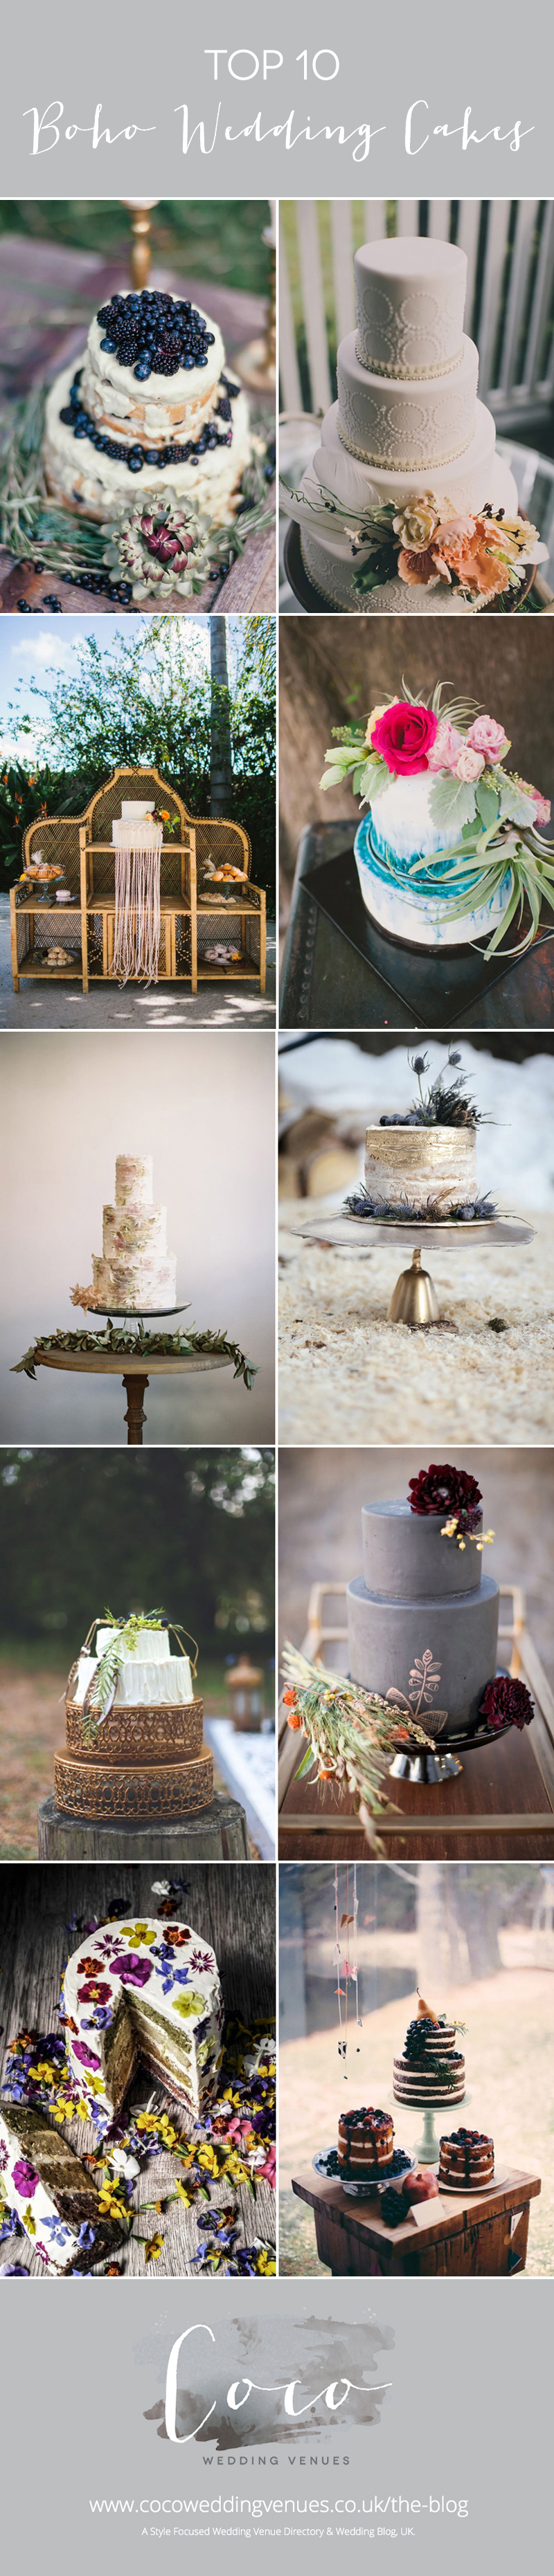 top-10-boho-wedding-cake-inspiration-coco-wedding-venues-pin-it